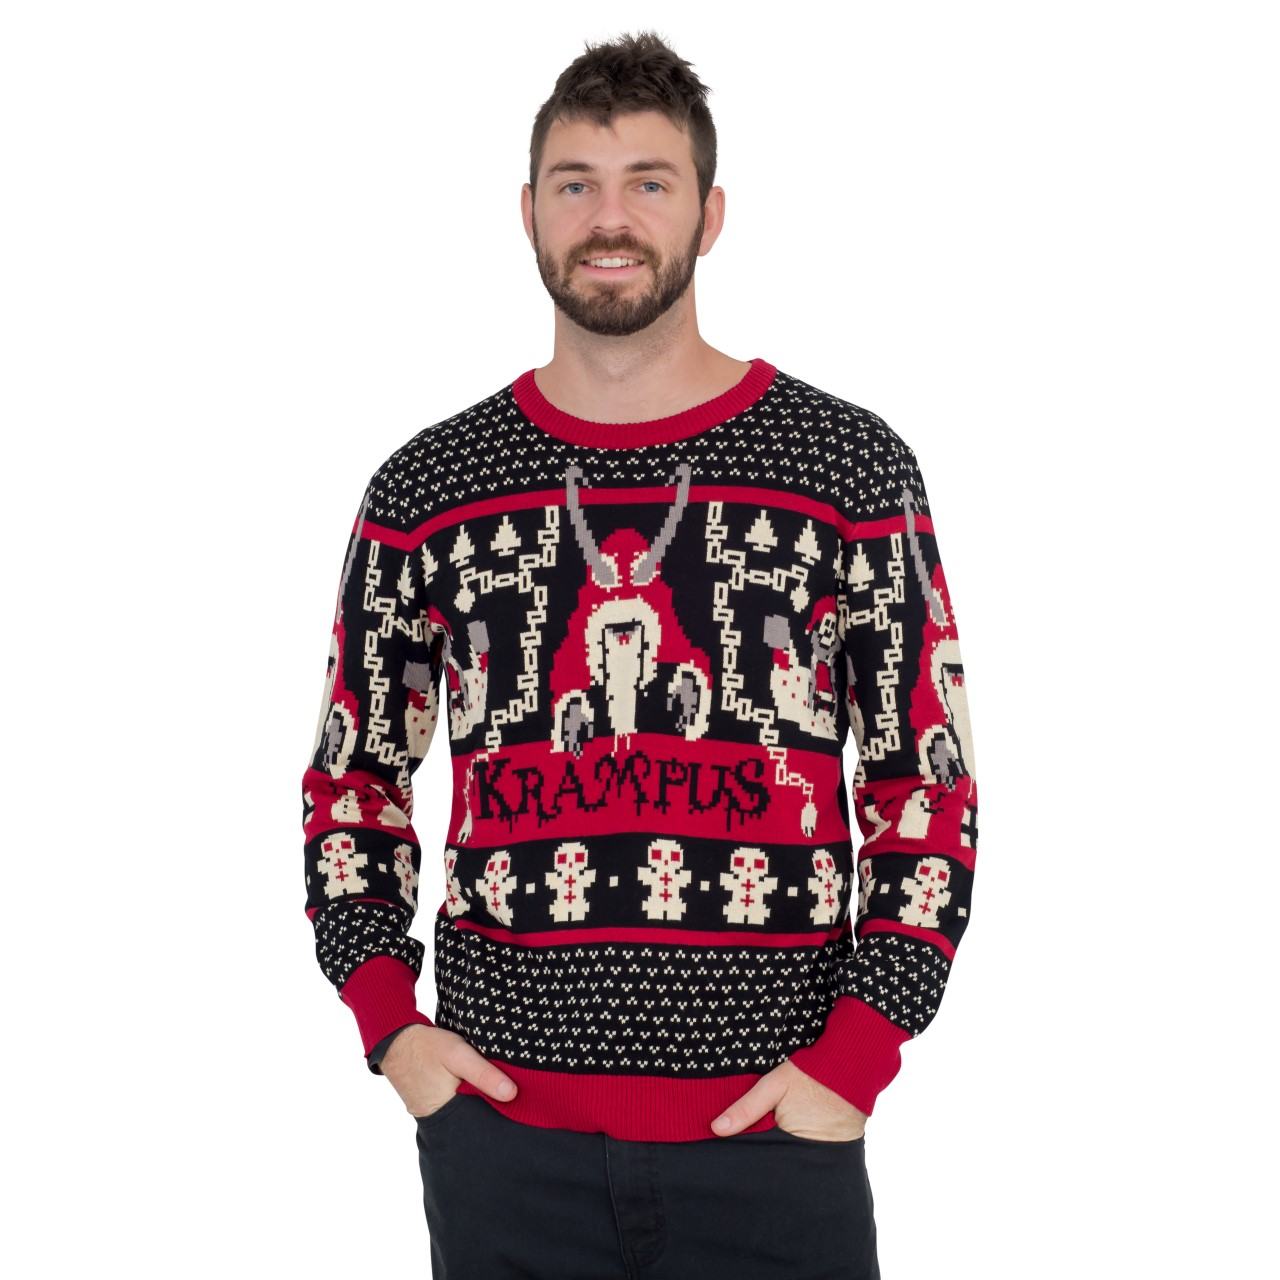 Krampus Knit Ugly Christmas Sweater,Ugly Christmas Sweaters | Funny Xmas Sweaters for Men and Women